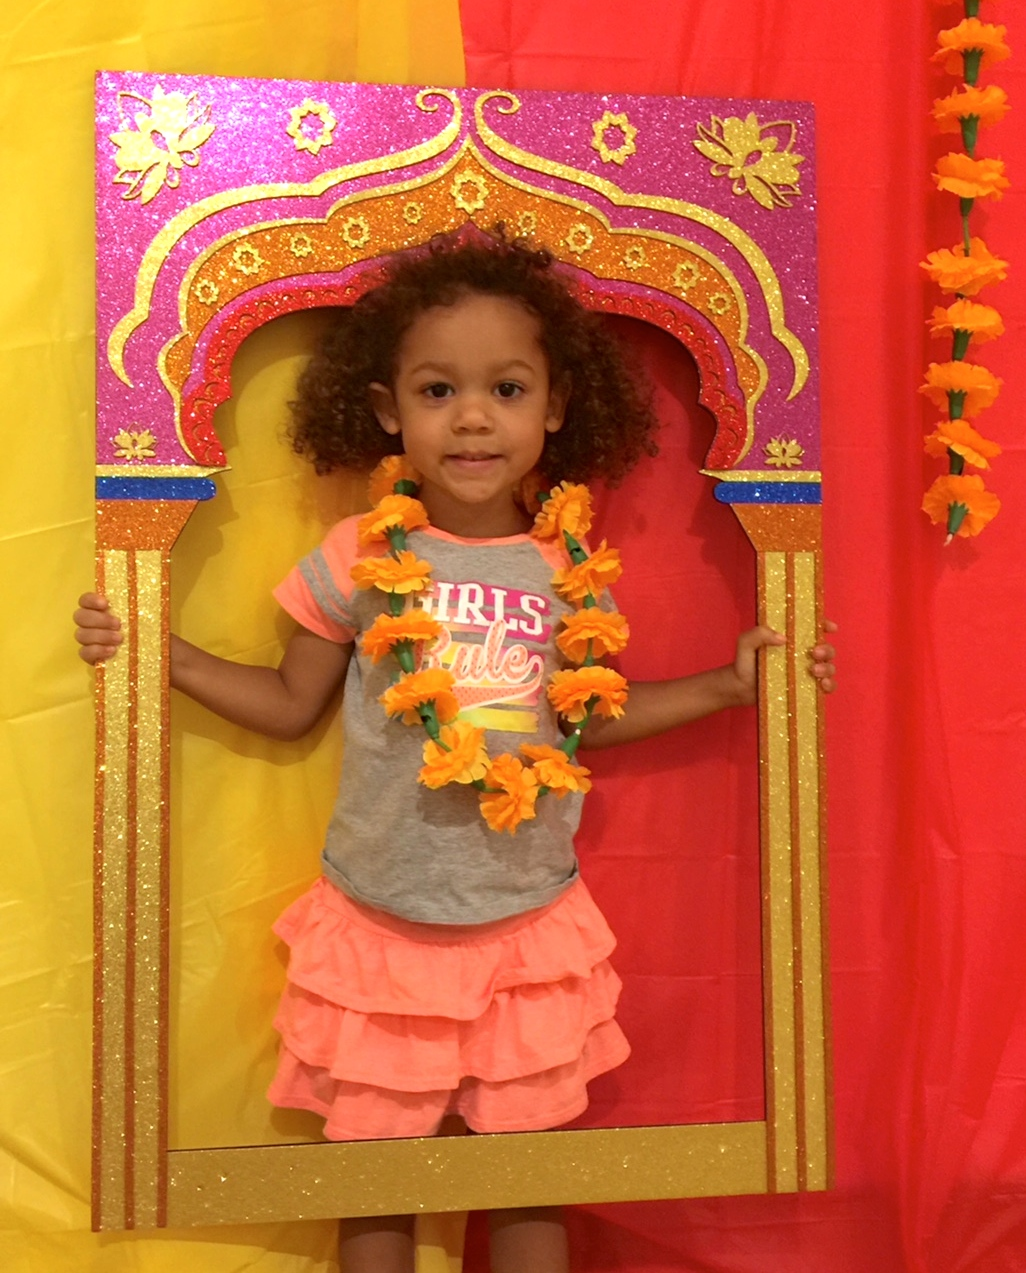 Photo Booth at Diwali Festival